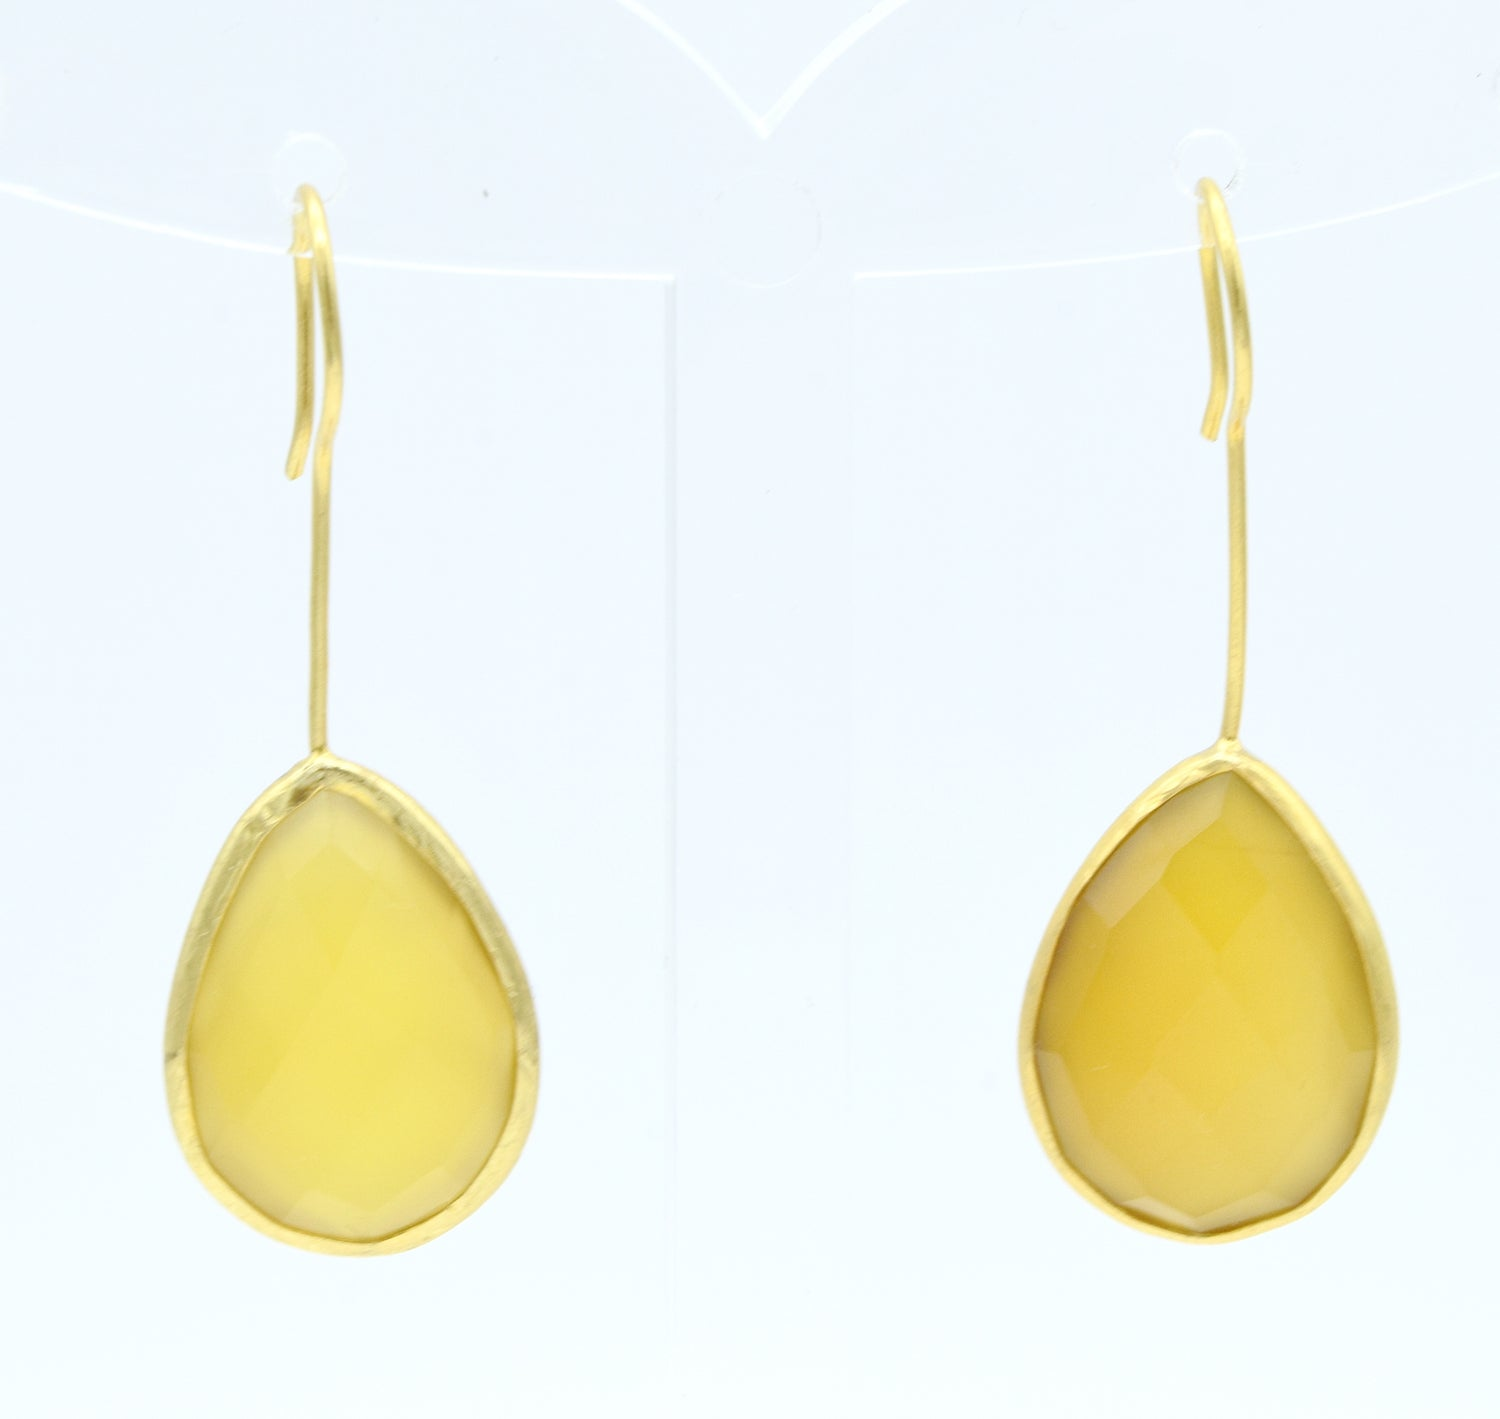 Aylas Chalcedony earrings - 21ct Gold plated semi precious gemstone - Handmade in Ottoman Style by Artisan